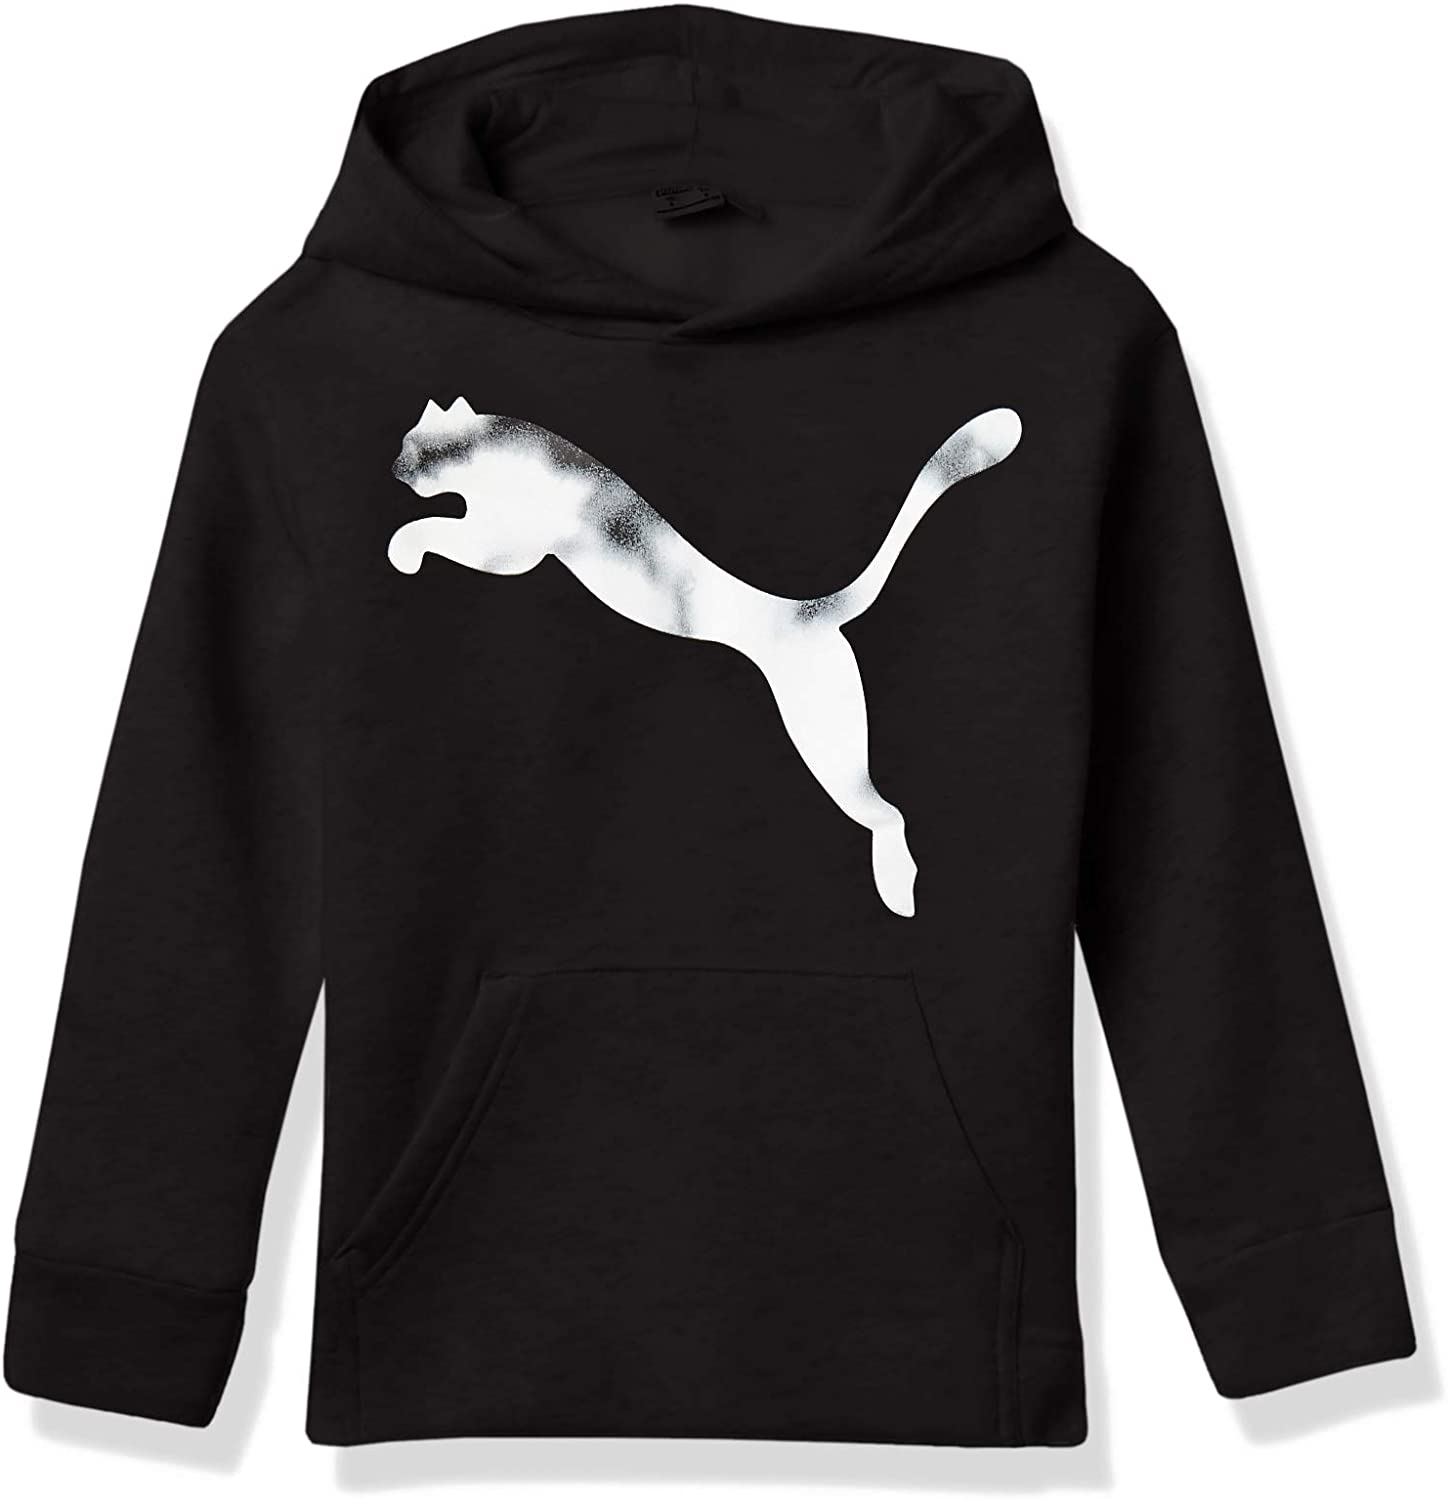 PUMA Spring Finally resale start new work one after another Boys' Hoodie Pullover